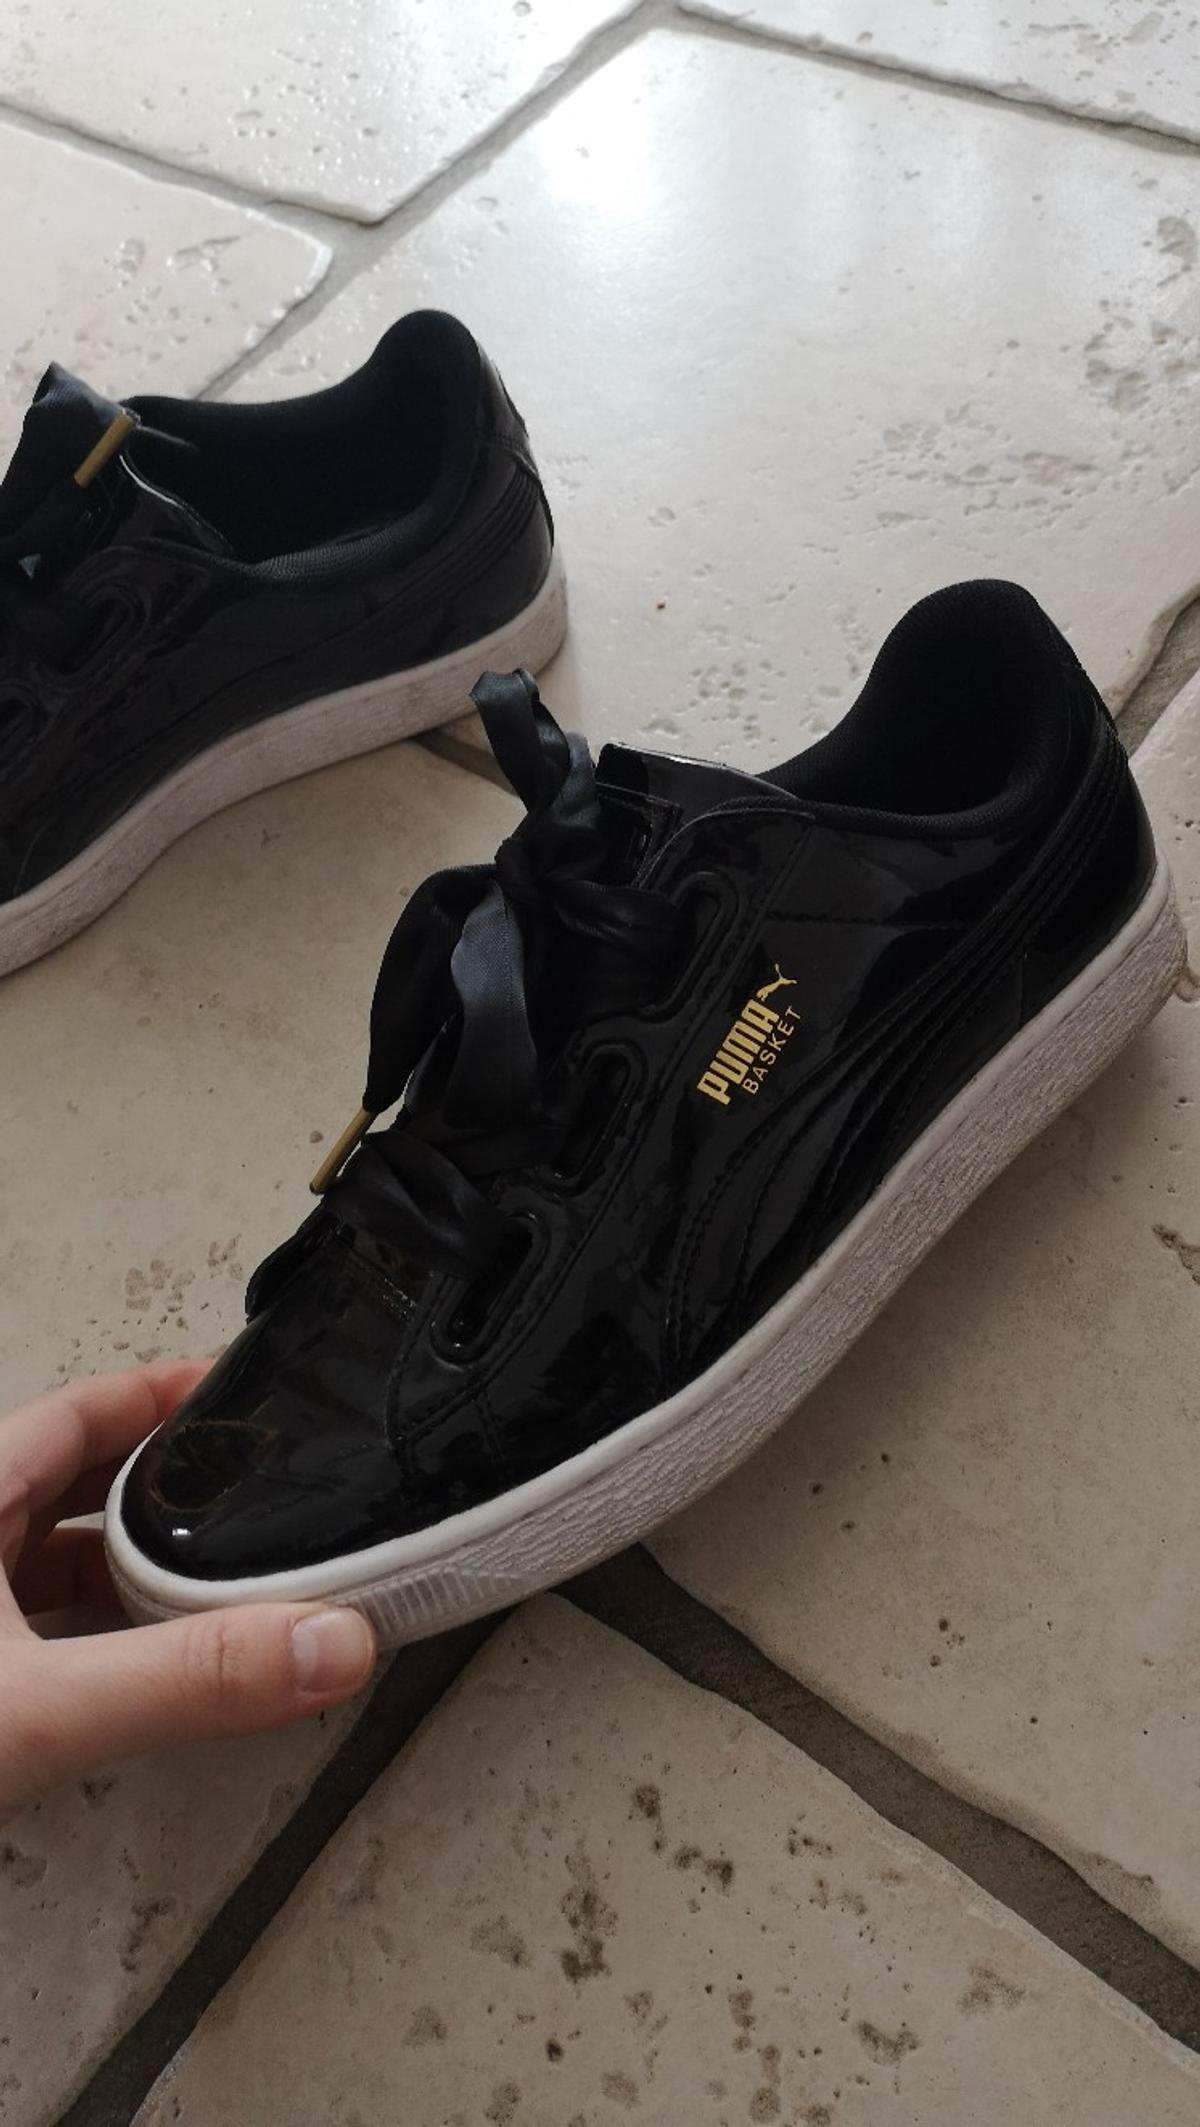 Puma Basket Schuhe in 1130 KG Lainz for €15.00 for sale Shpock